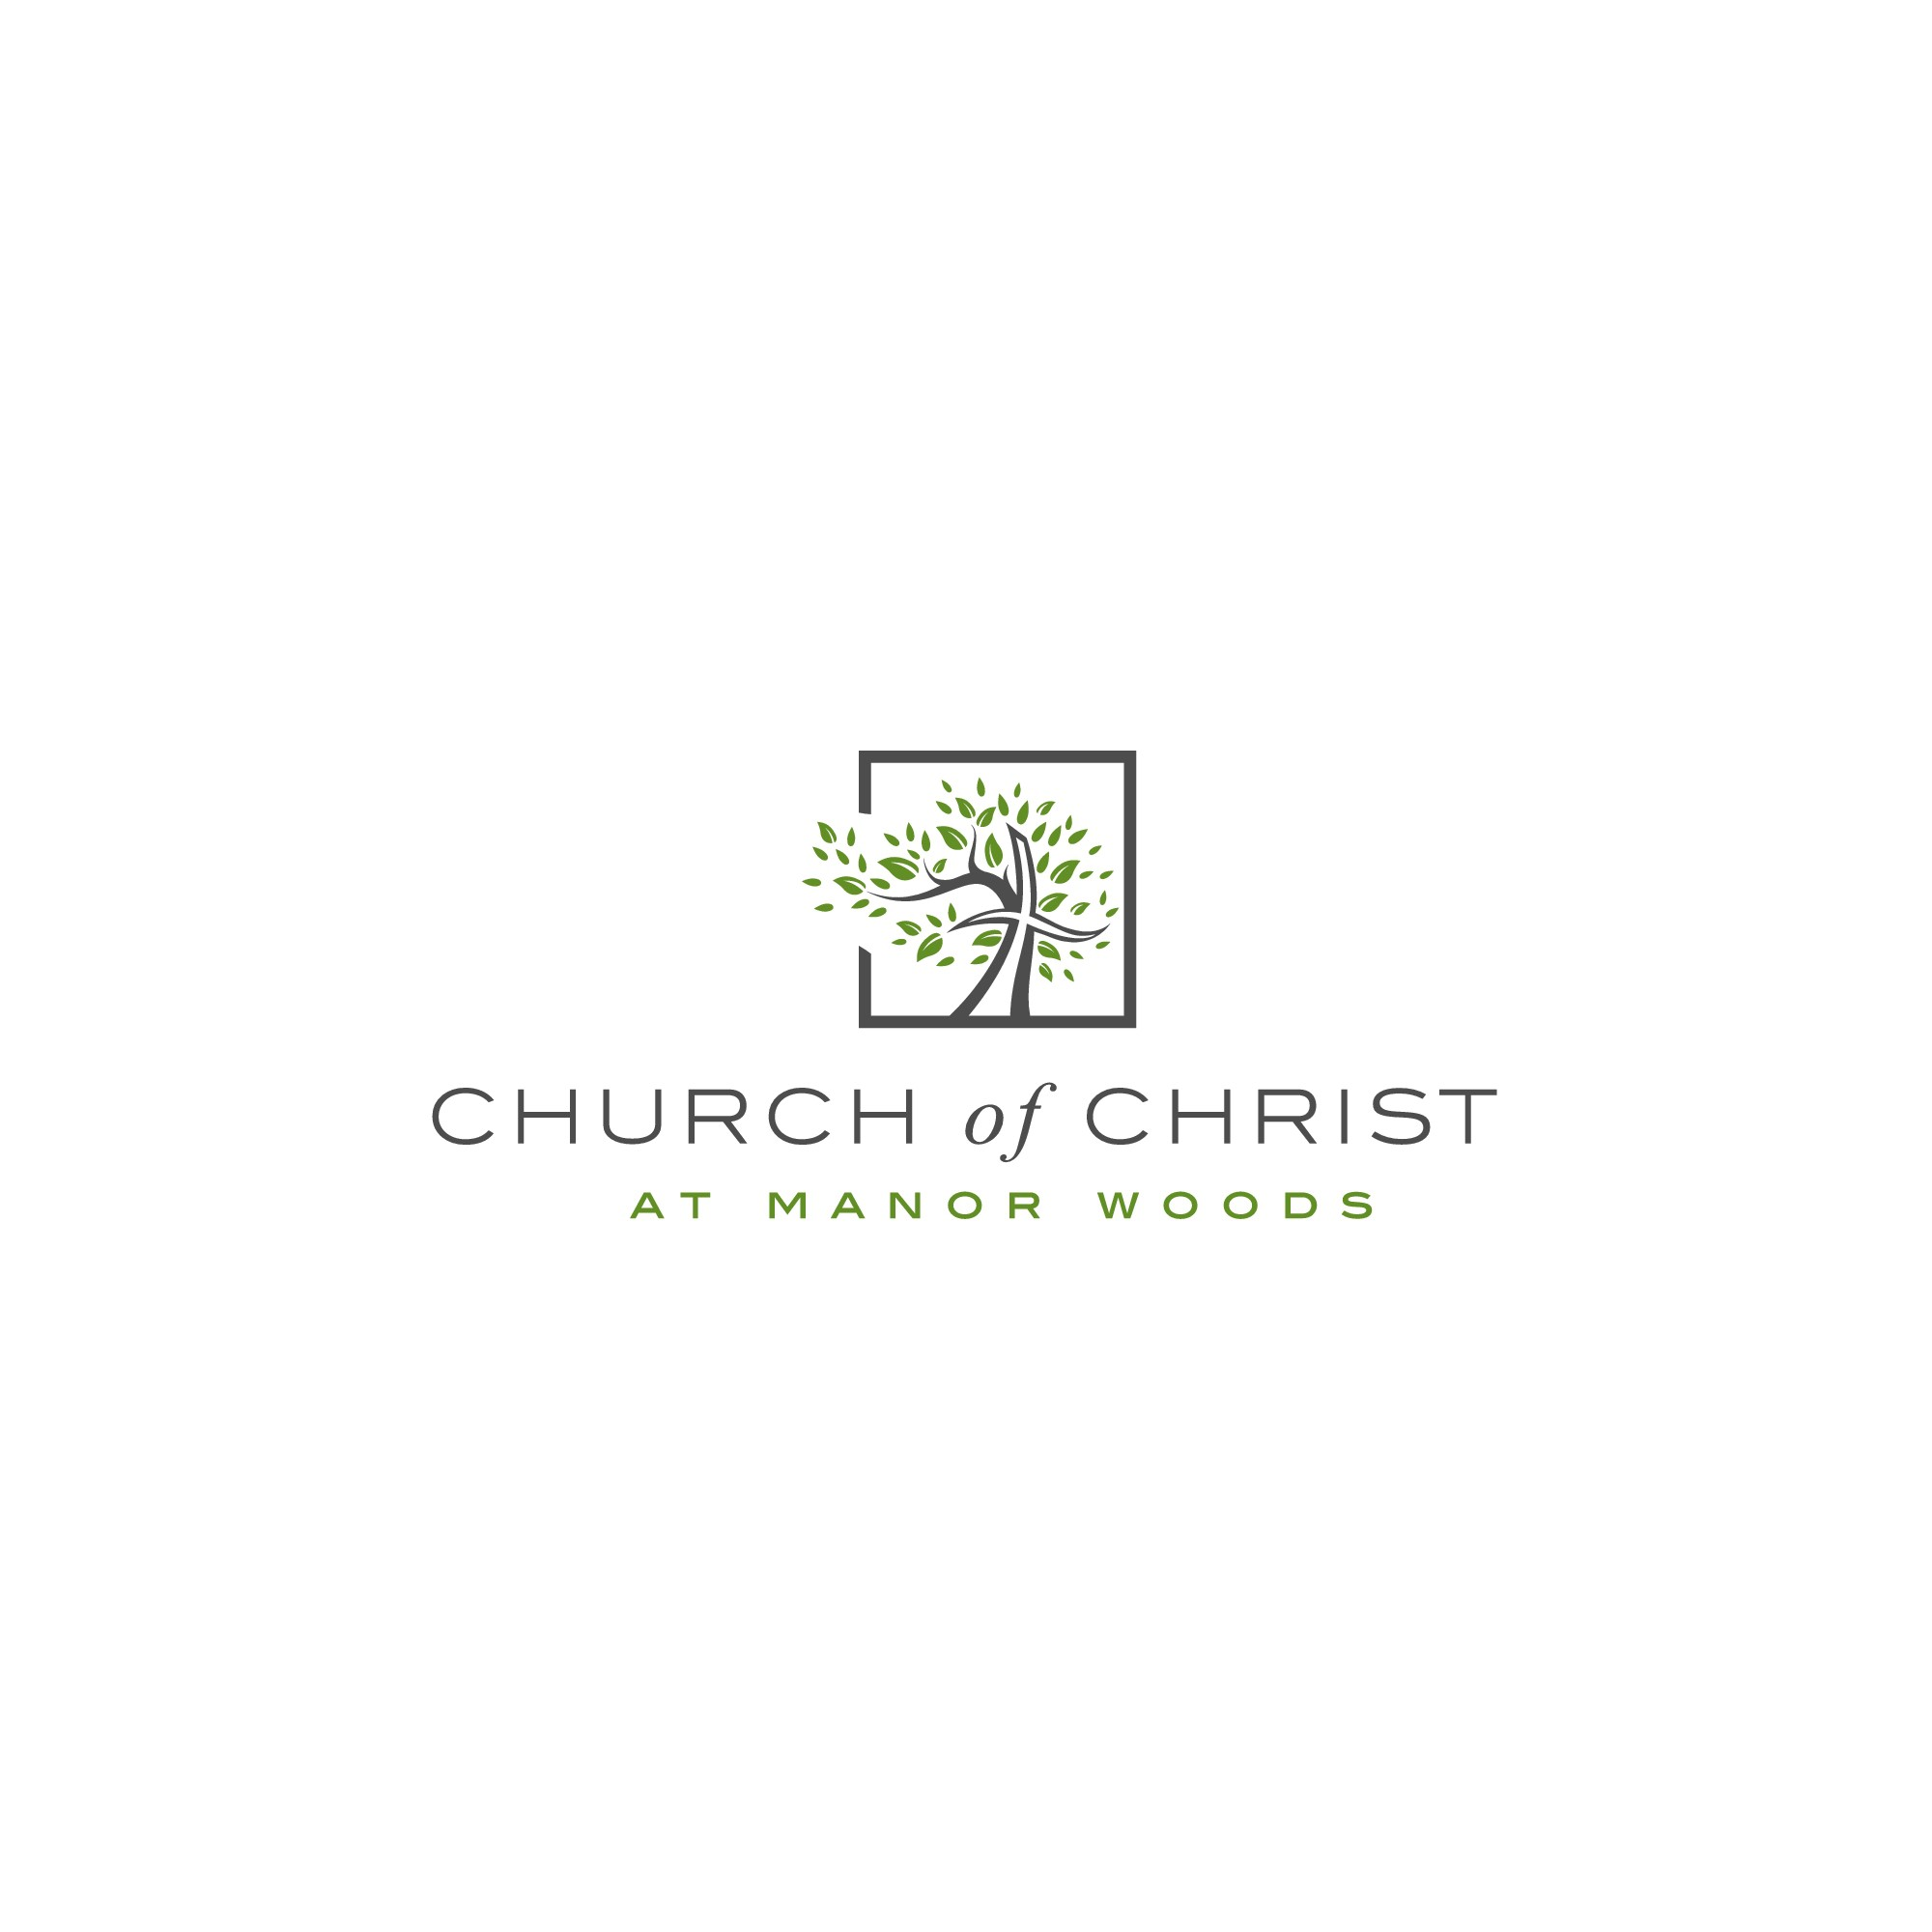 Create a logo for a local church that will stand out for young families.